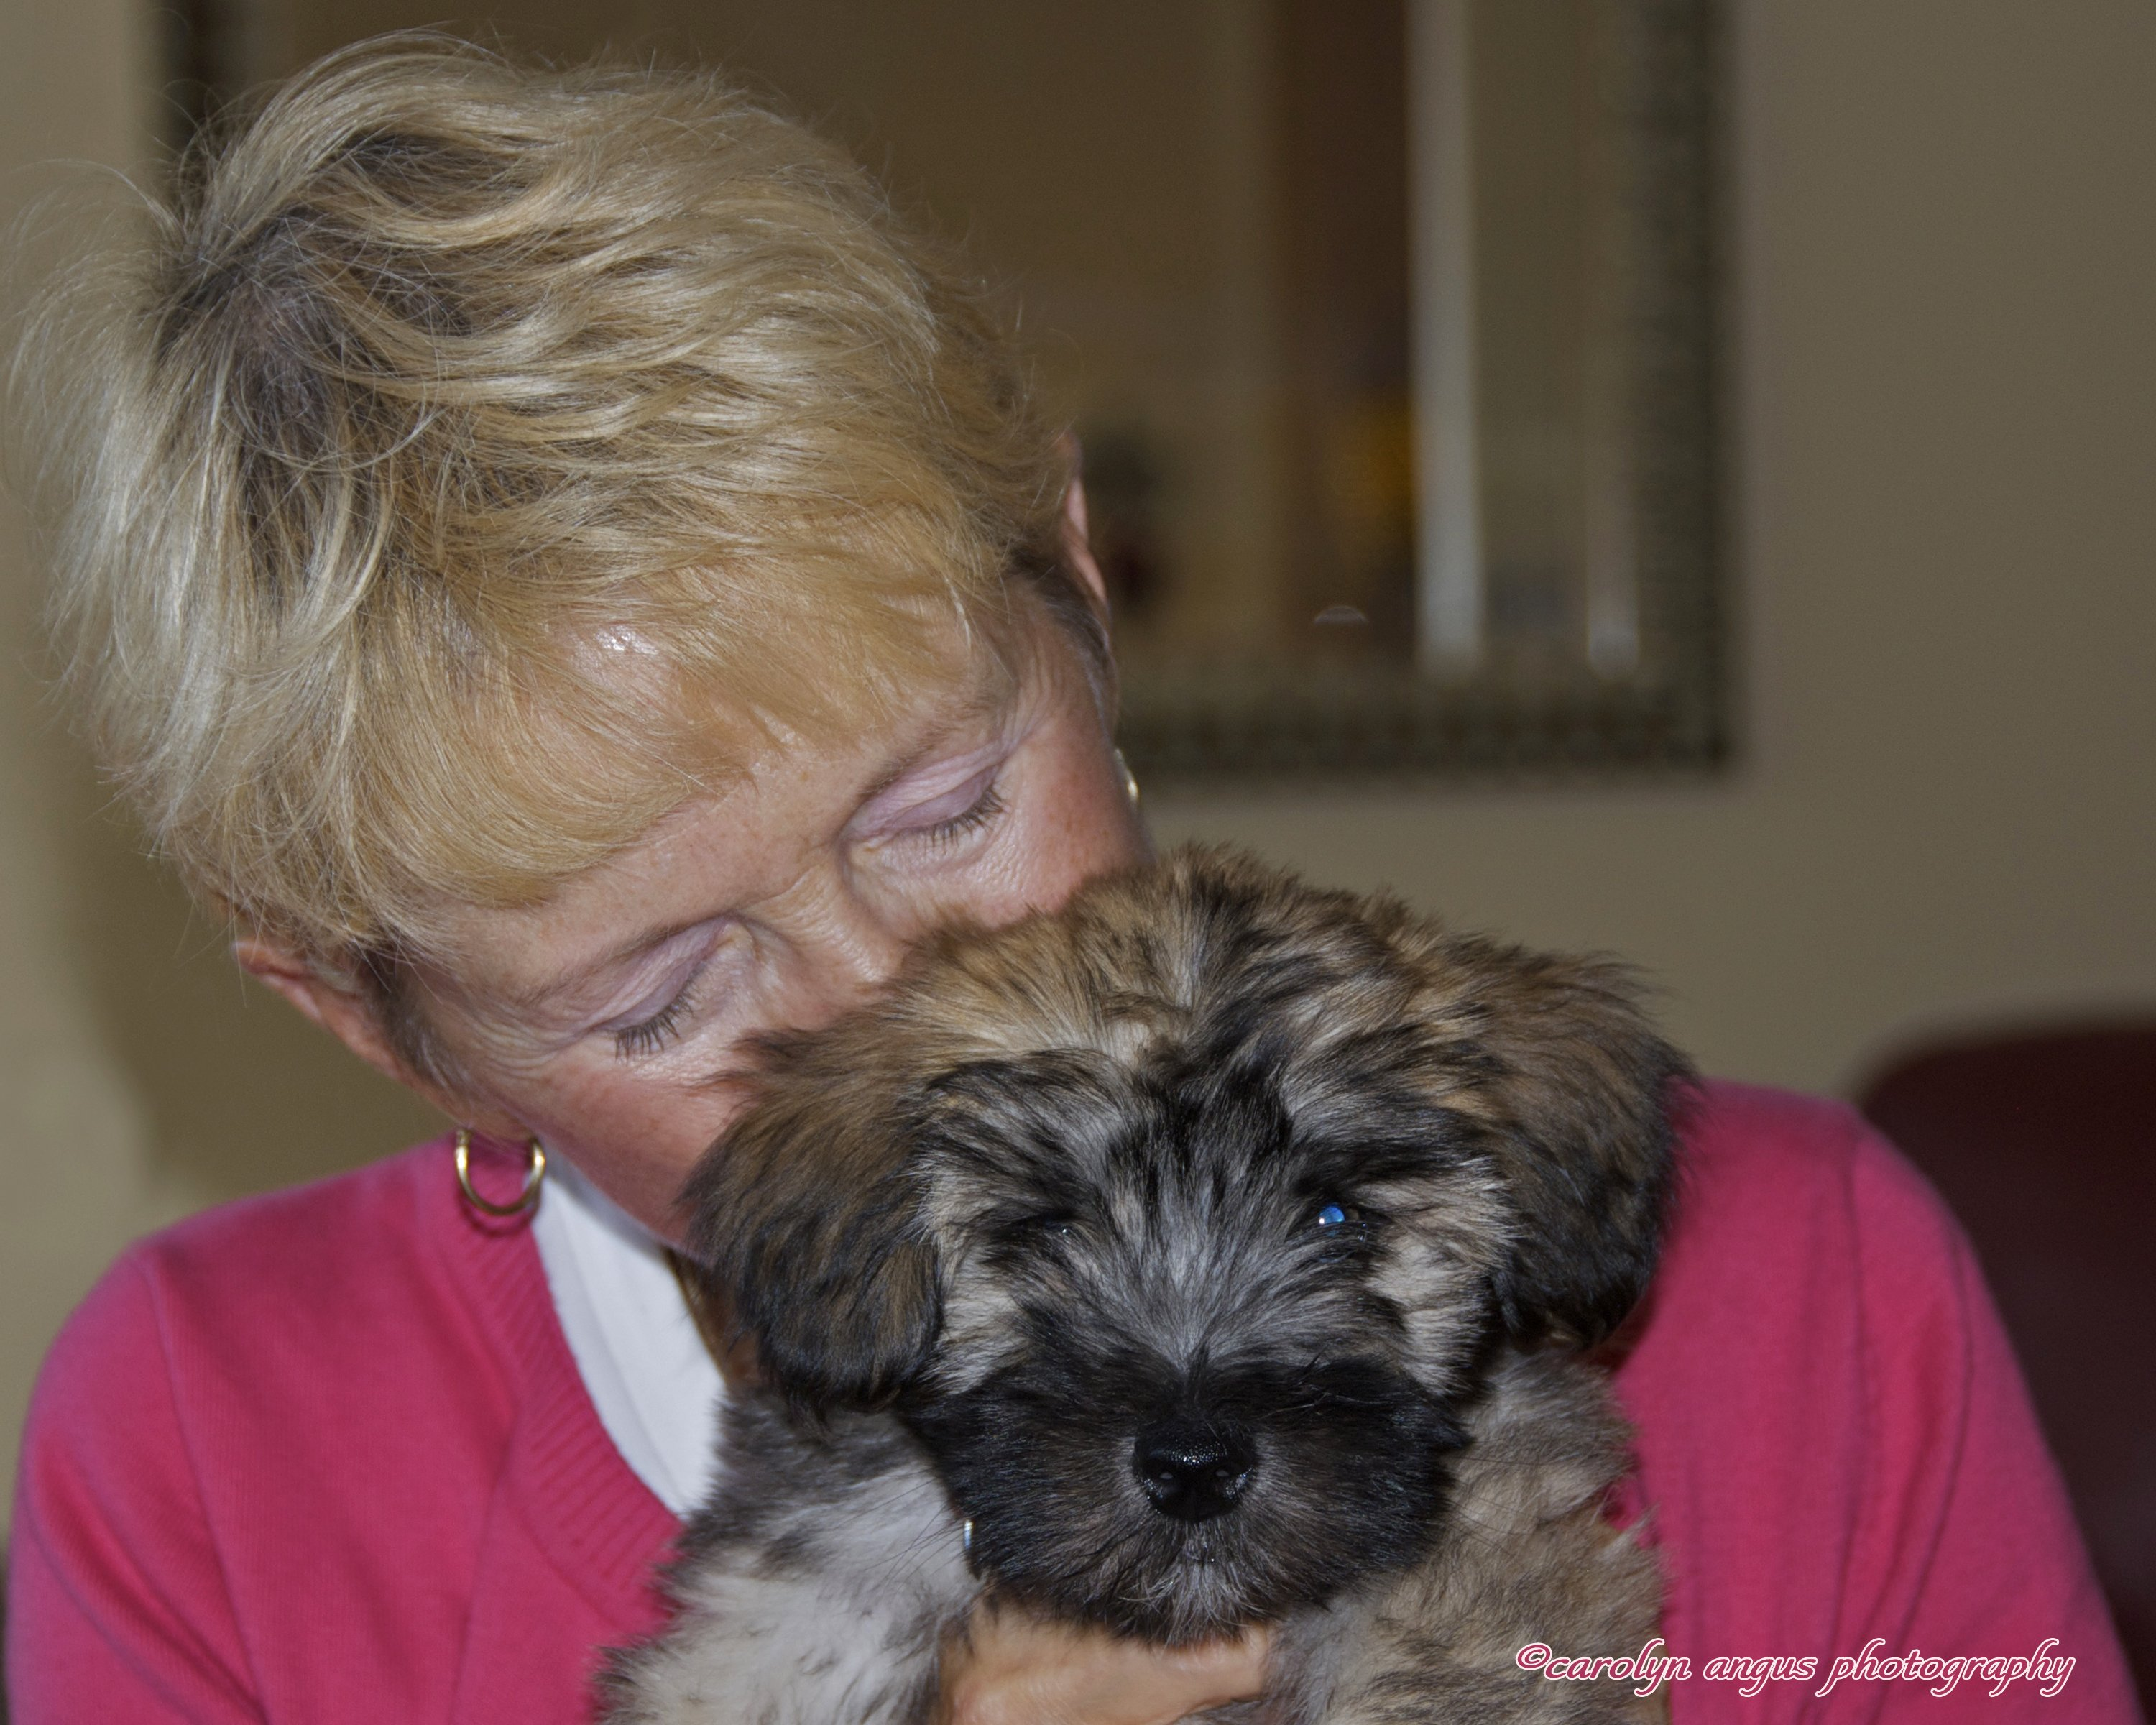 Veterinary employee embracing a puppy at the animal hospital in Port Coquitlam